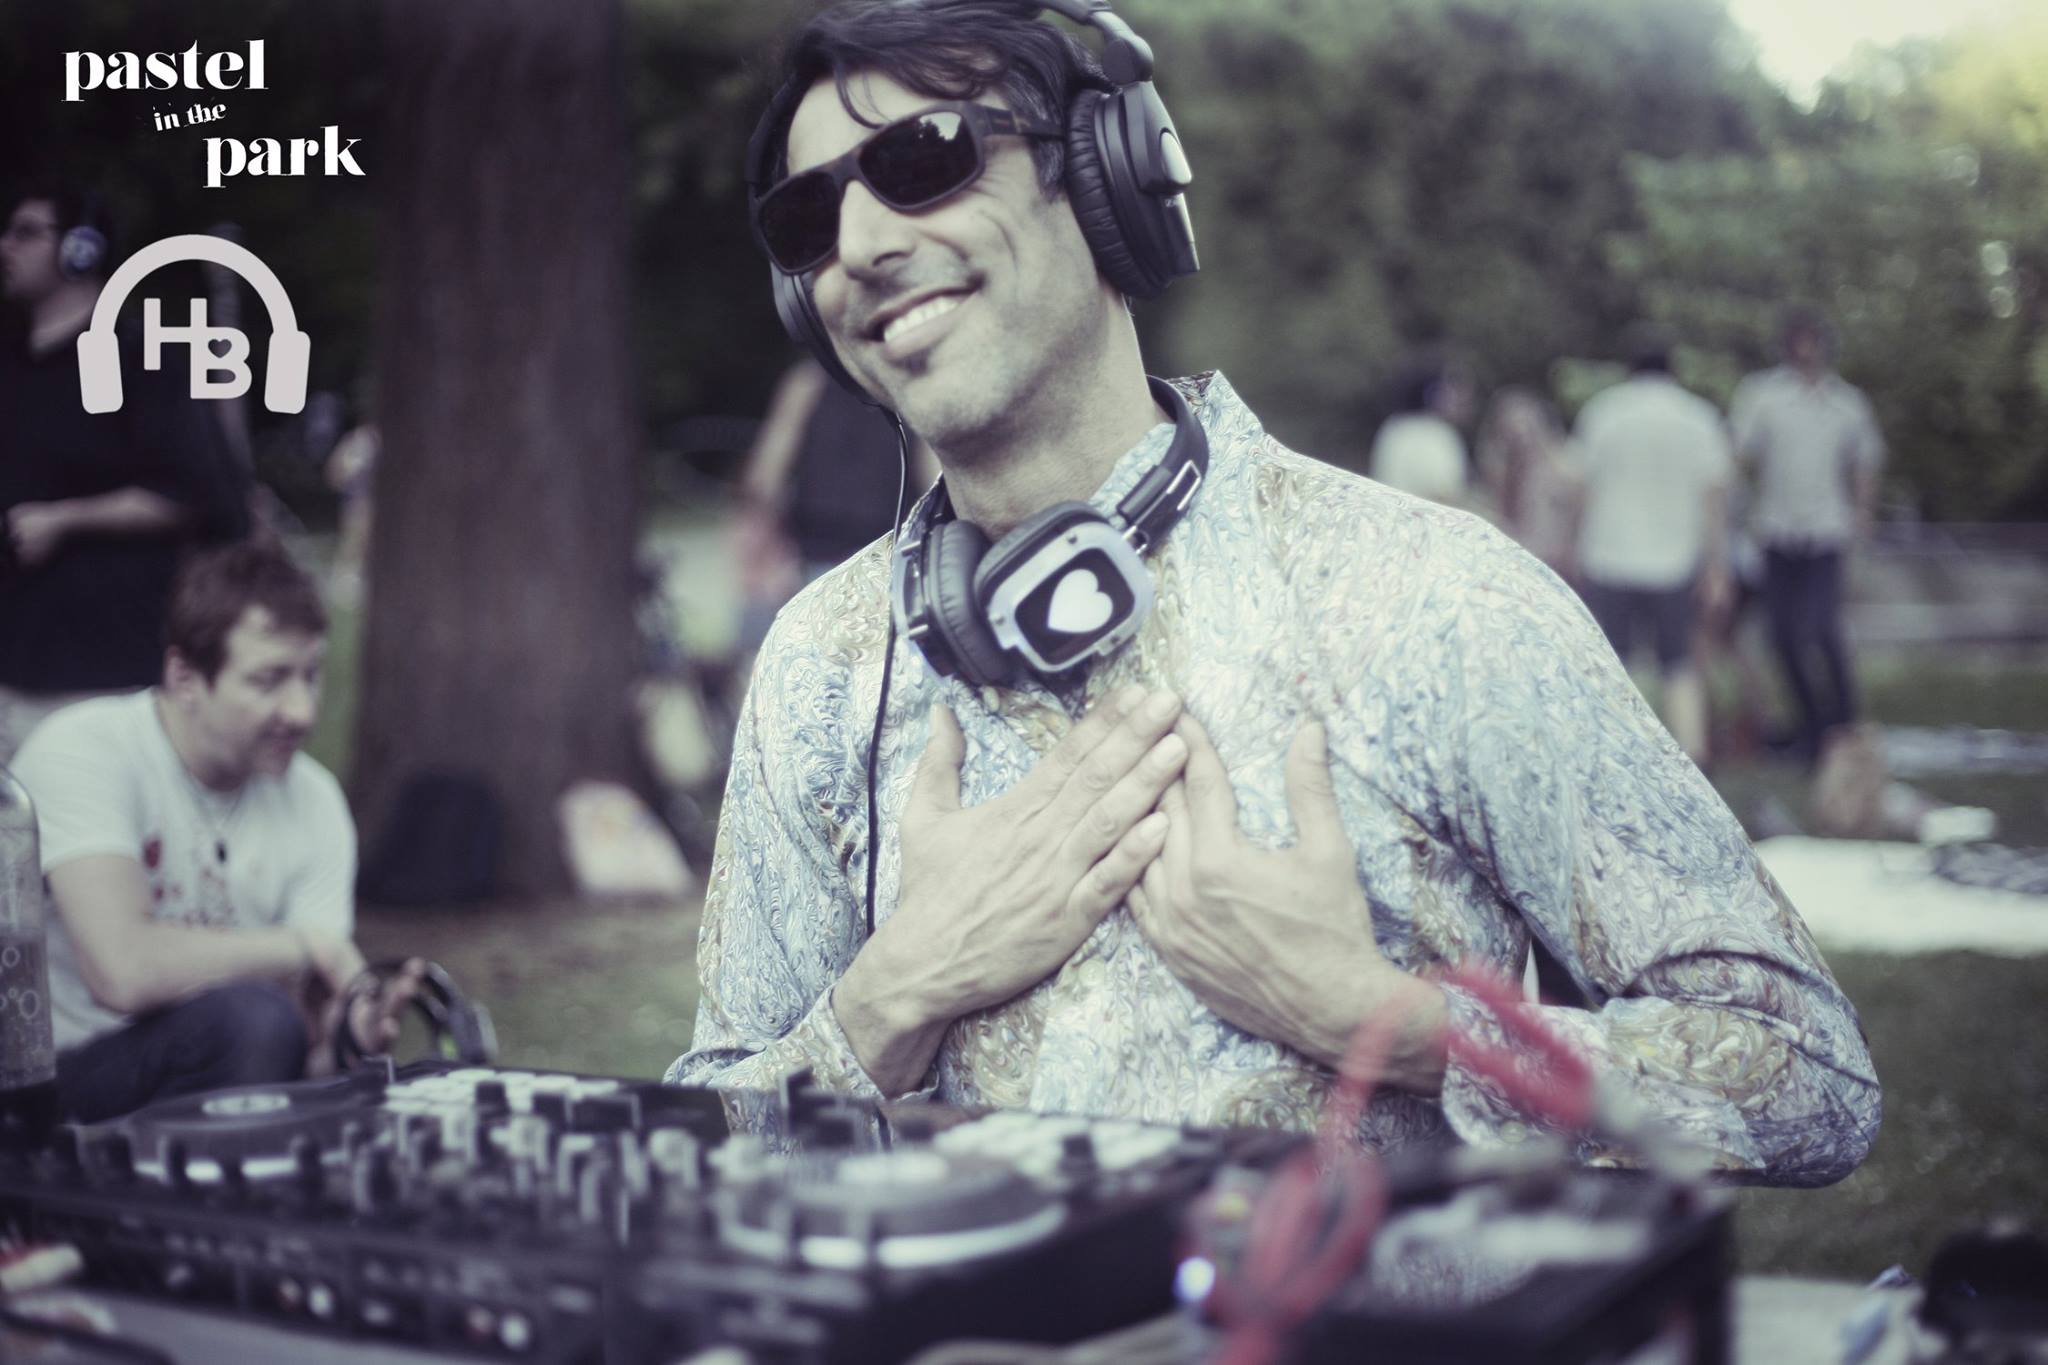 Heartbeat Silent Disco Pastel In The Park Sunday May 1